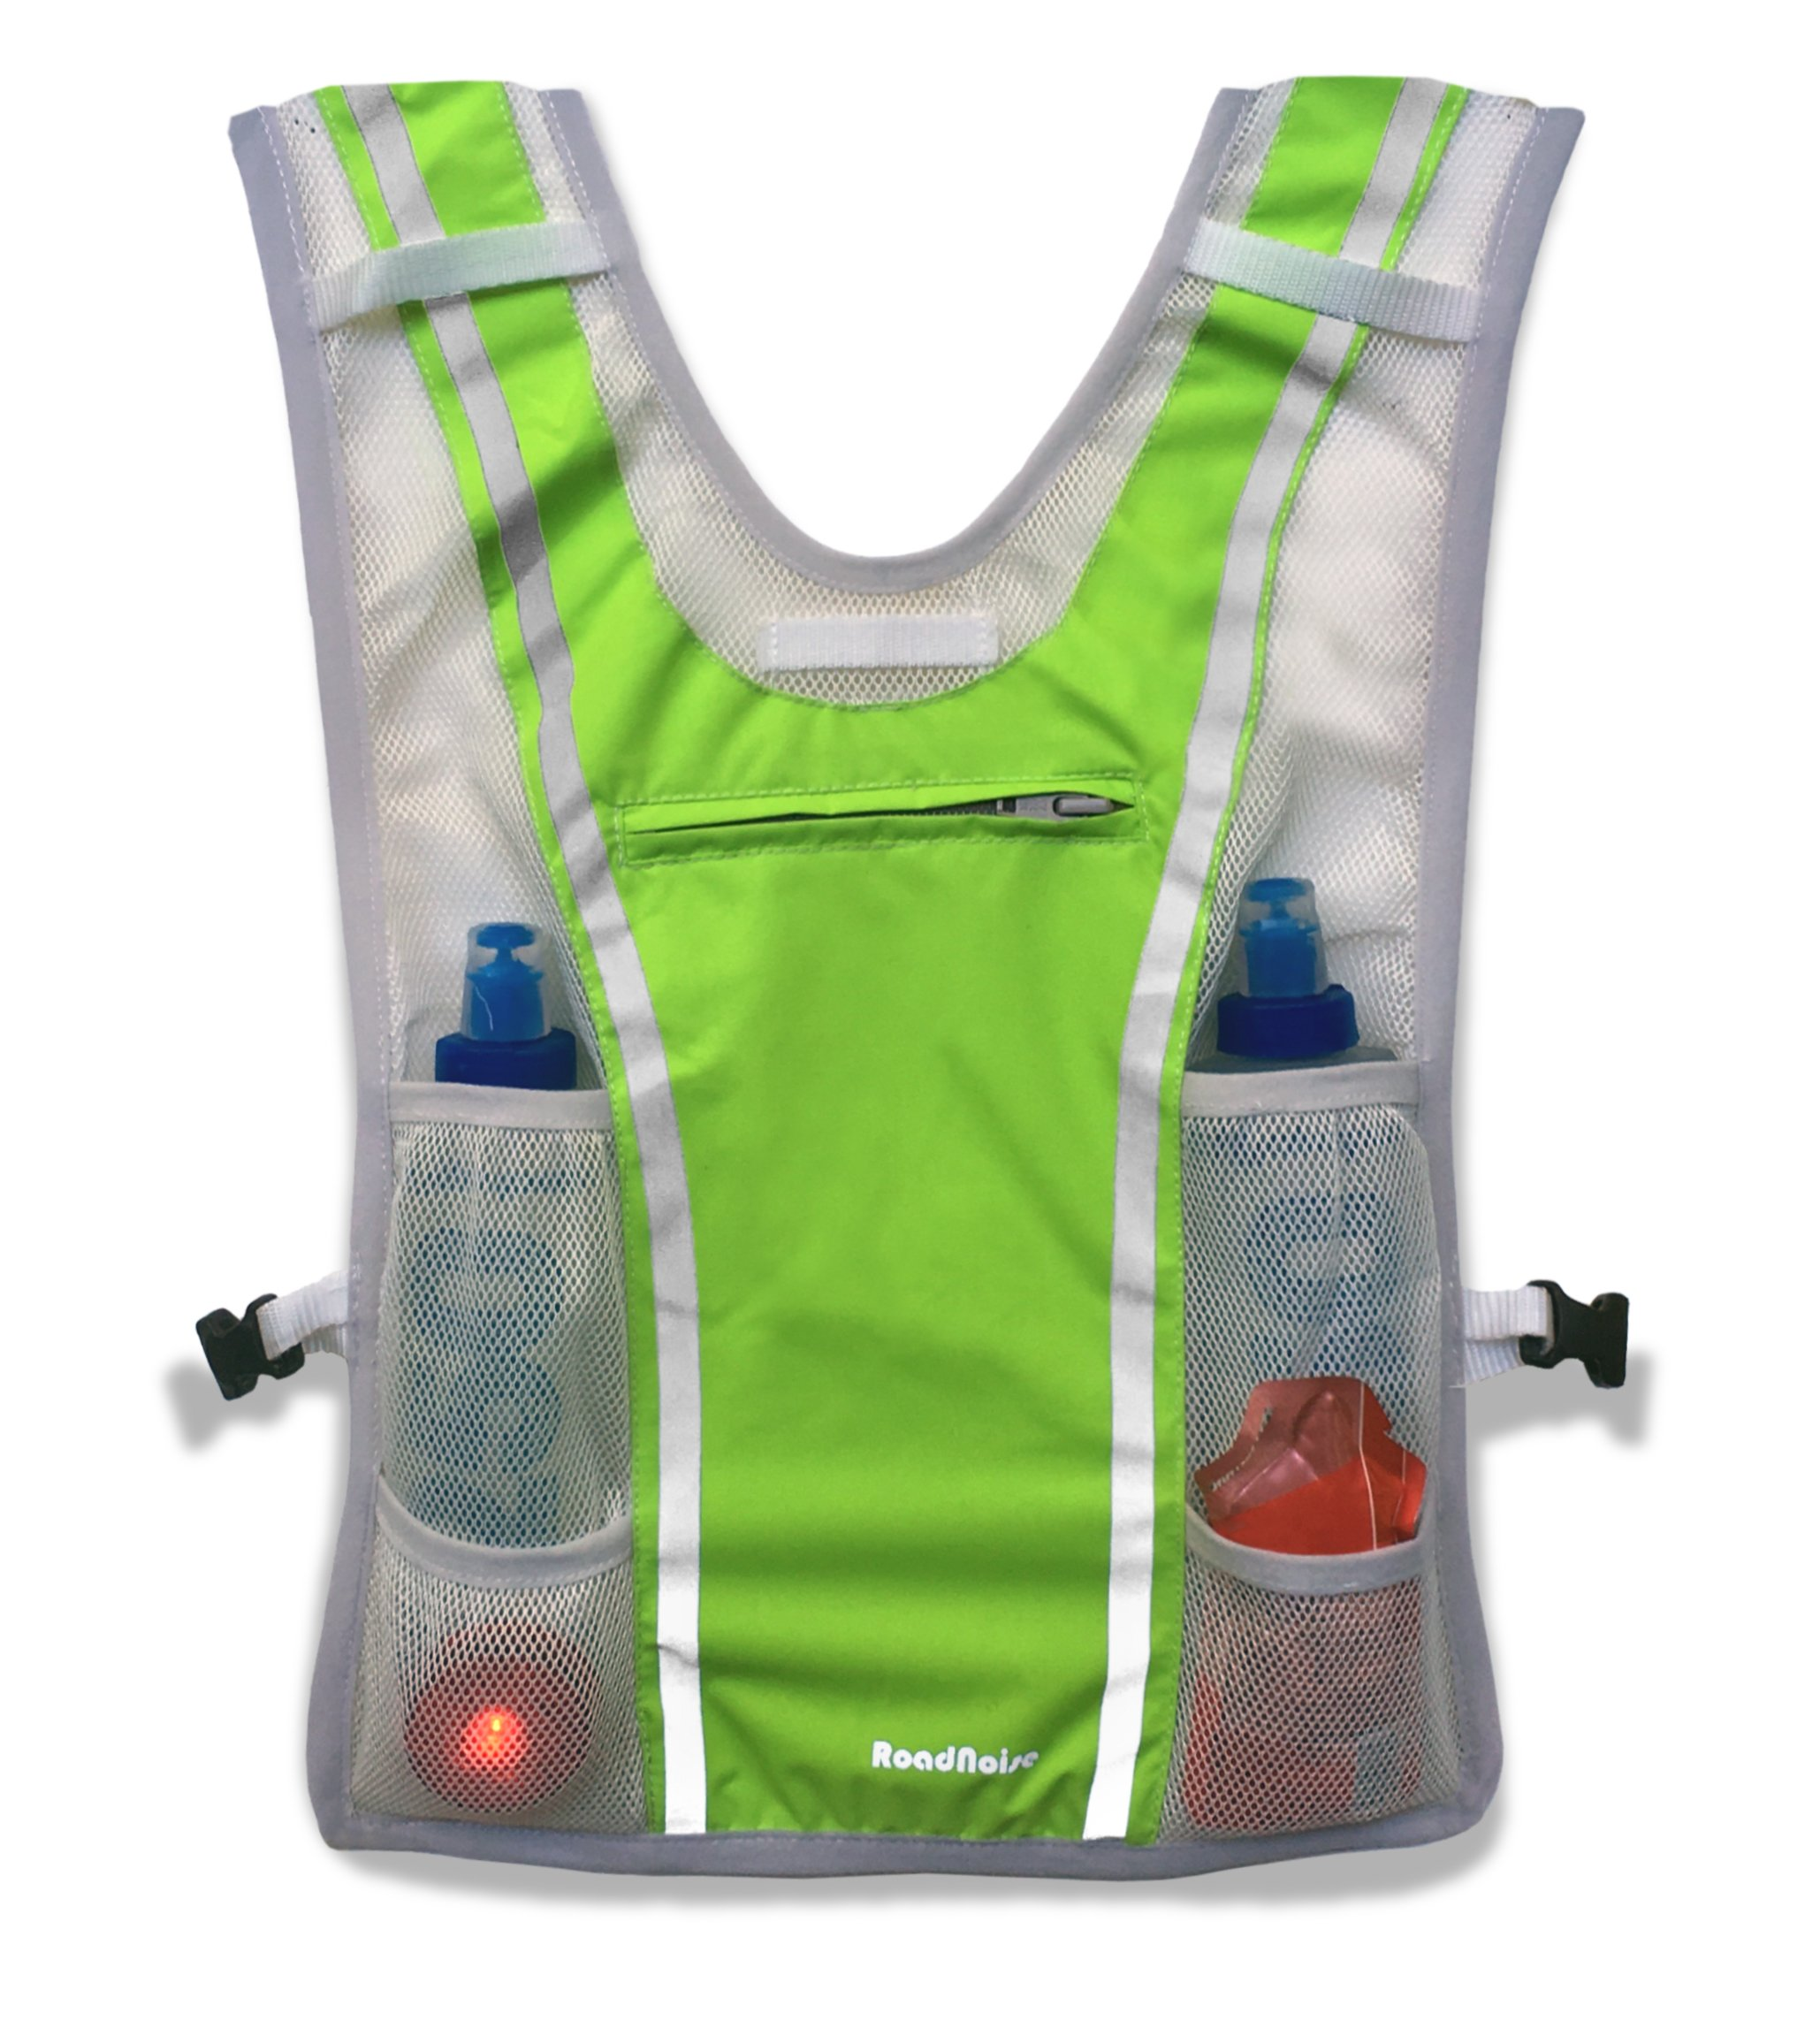 Roadnoise Long Haul Vest Running and Cycling Vest with speakers. Safer running and riding with music. (Hi Vis Green, X-Small/Small) by Roadnoise (Image #4)